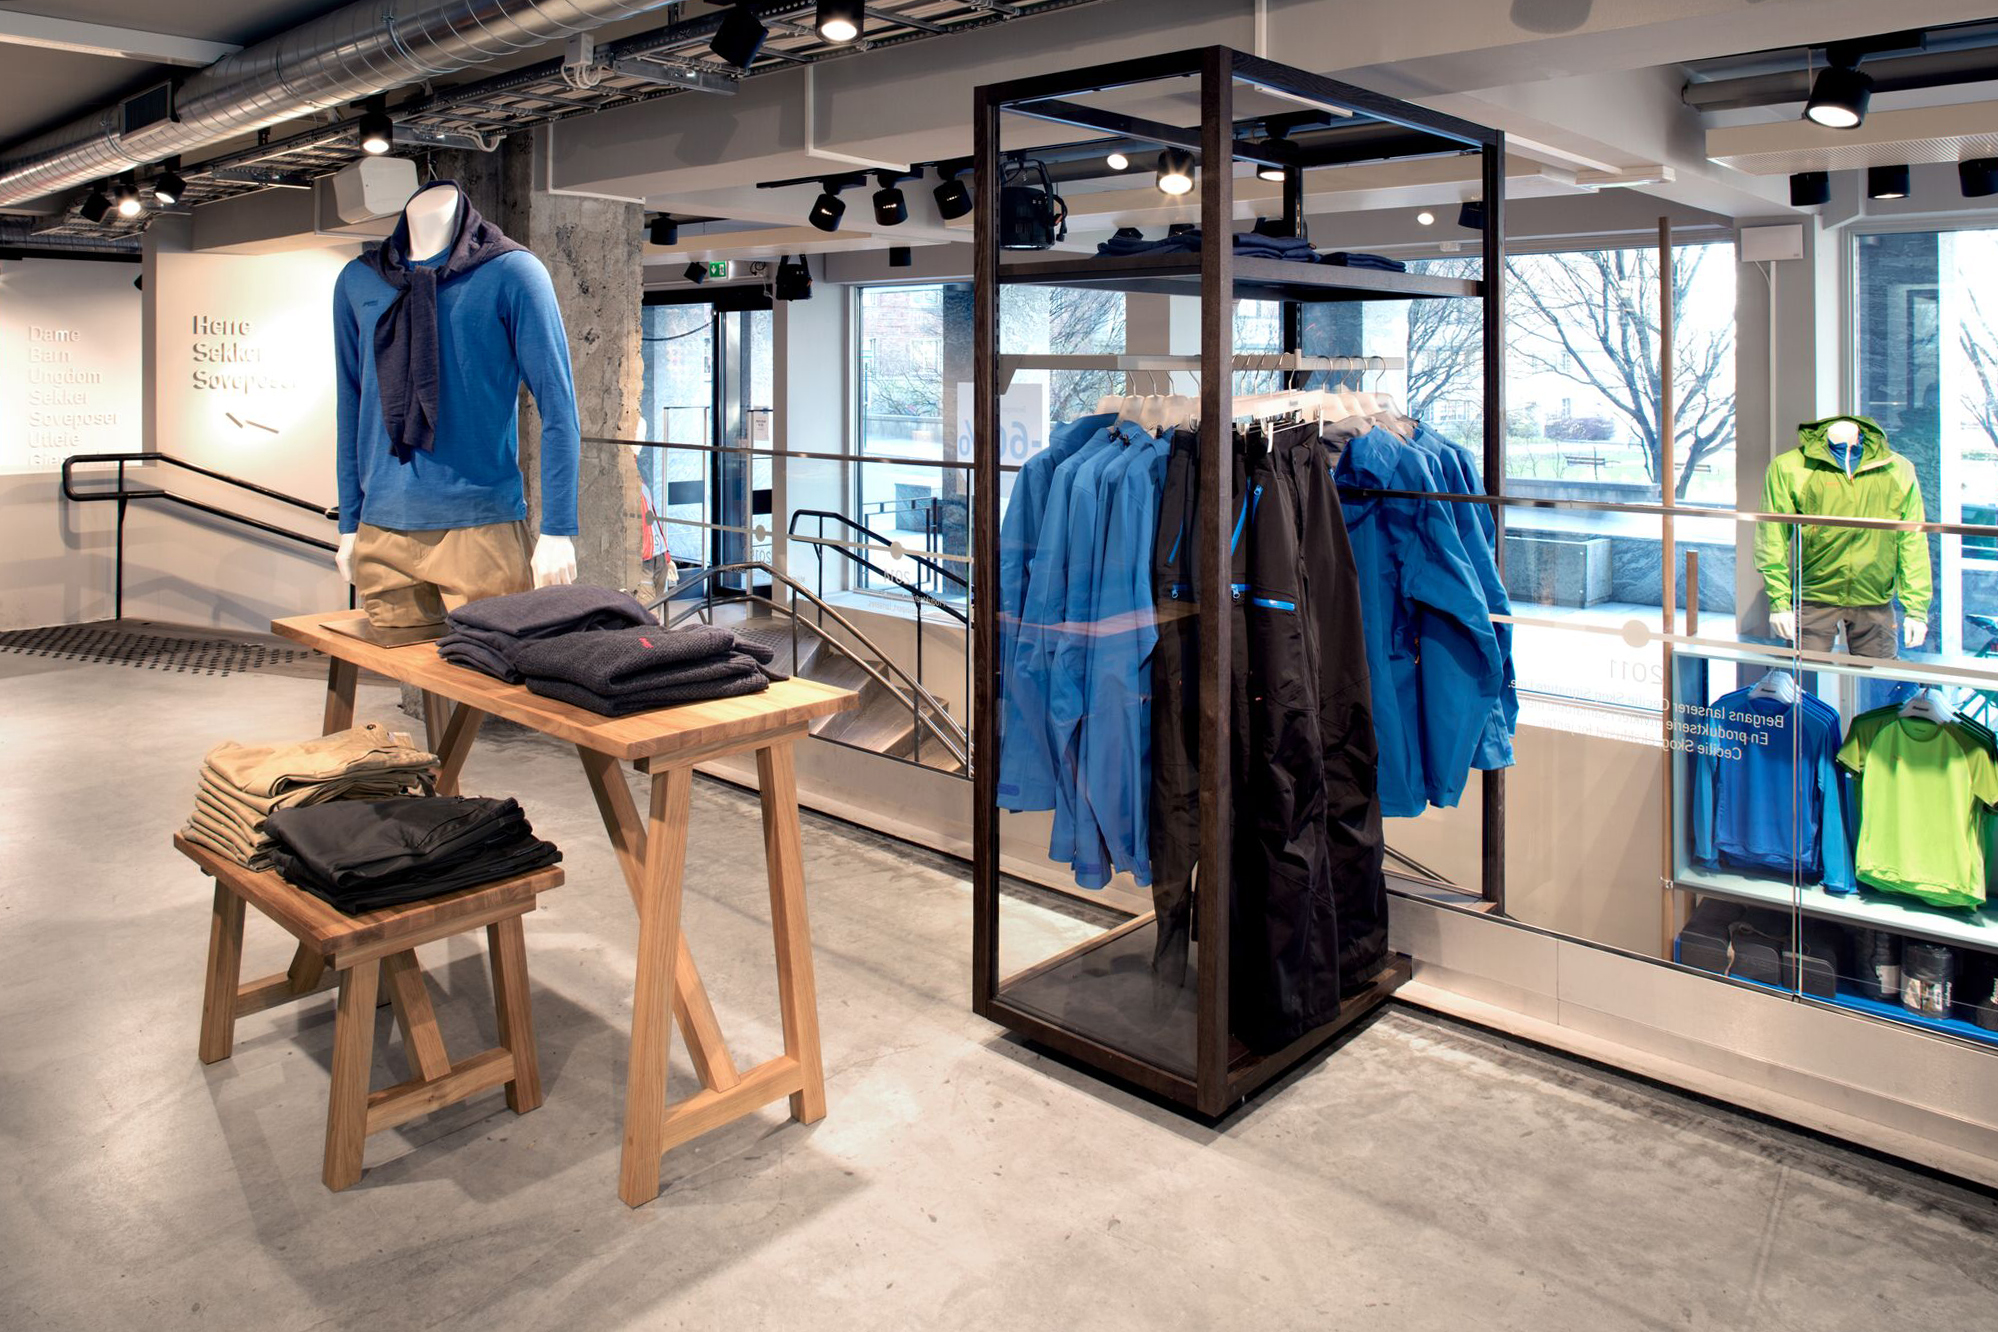 Bergans of Norway: Modern Scandinavian Flagship Store, done with rustic concrete floors, minimalist wood furniture and shelving, made to compliment the vibe of the outdoor brand - Interior Design by GARDE. Mads Emil Garde